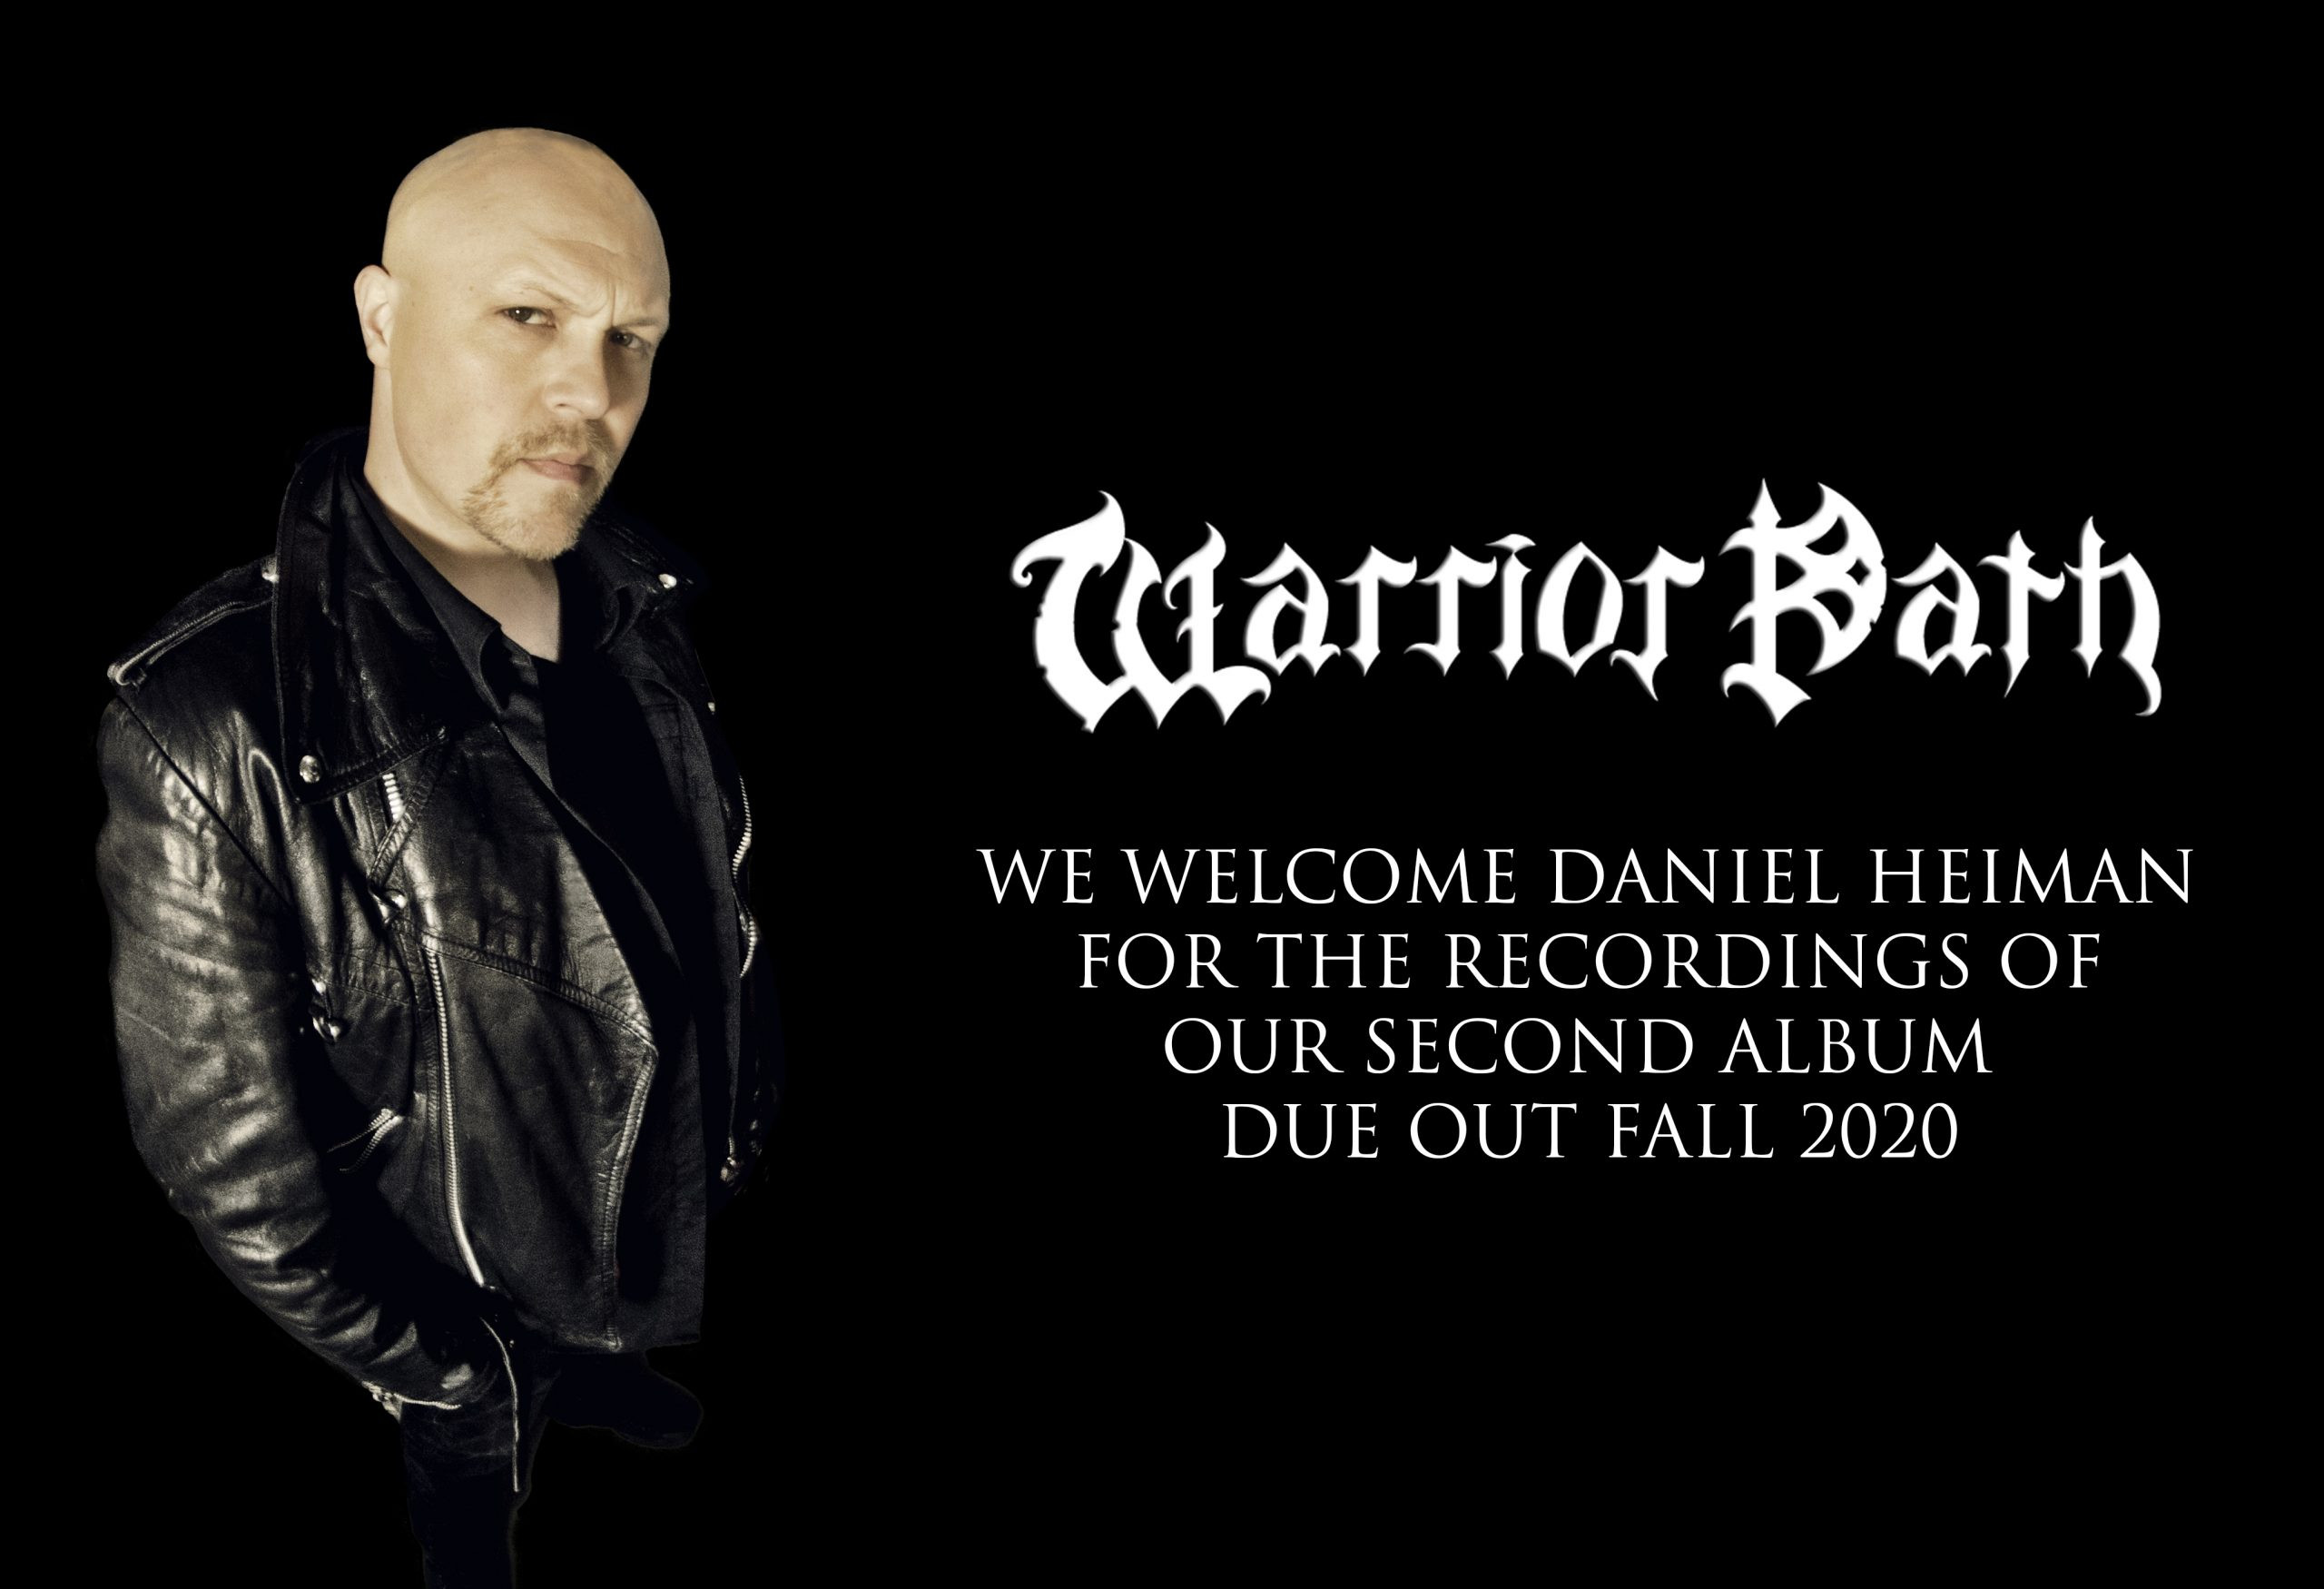 DANIEL HEIMAN.....the new voice of WARRIOR PATH